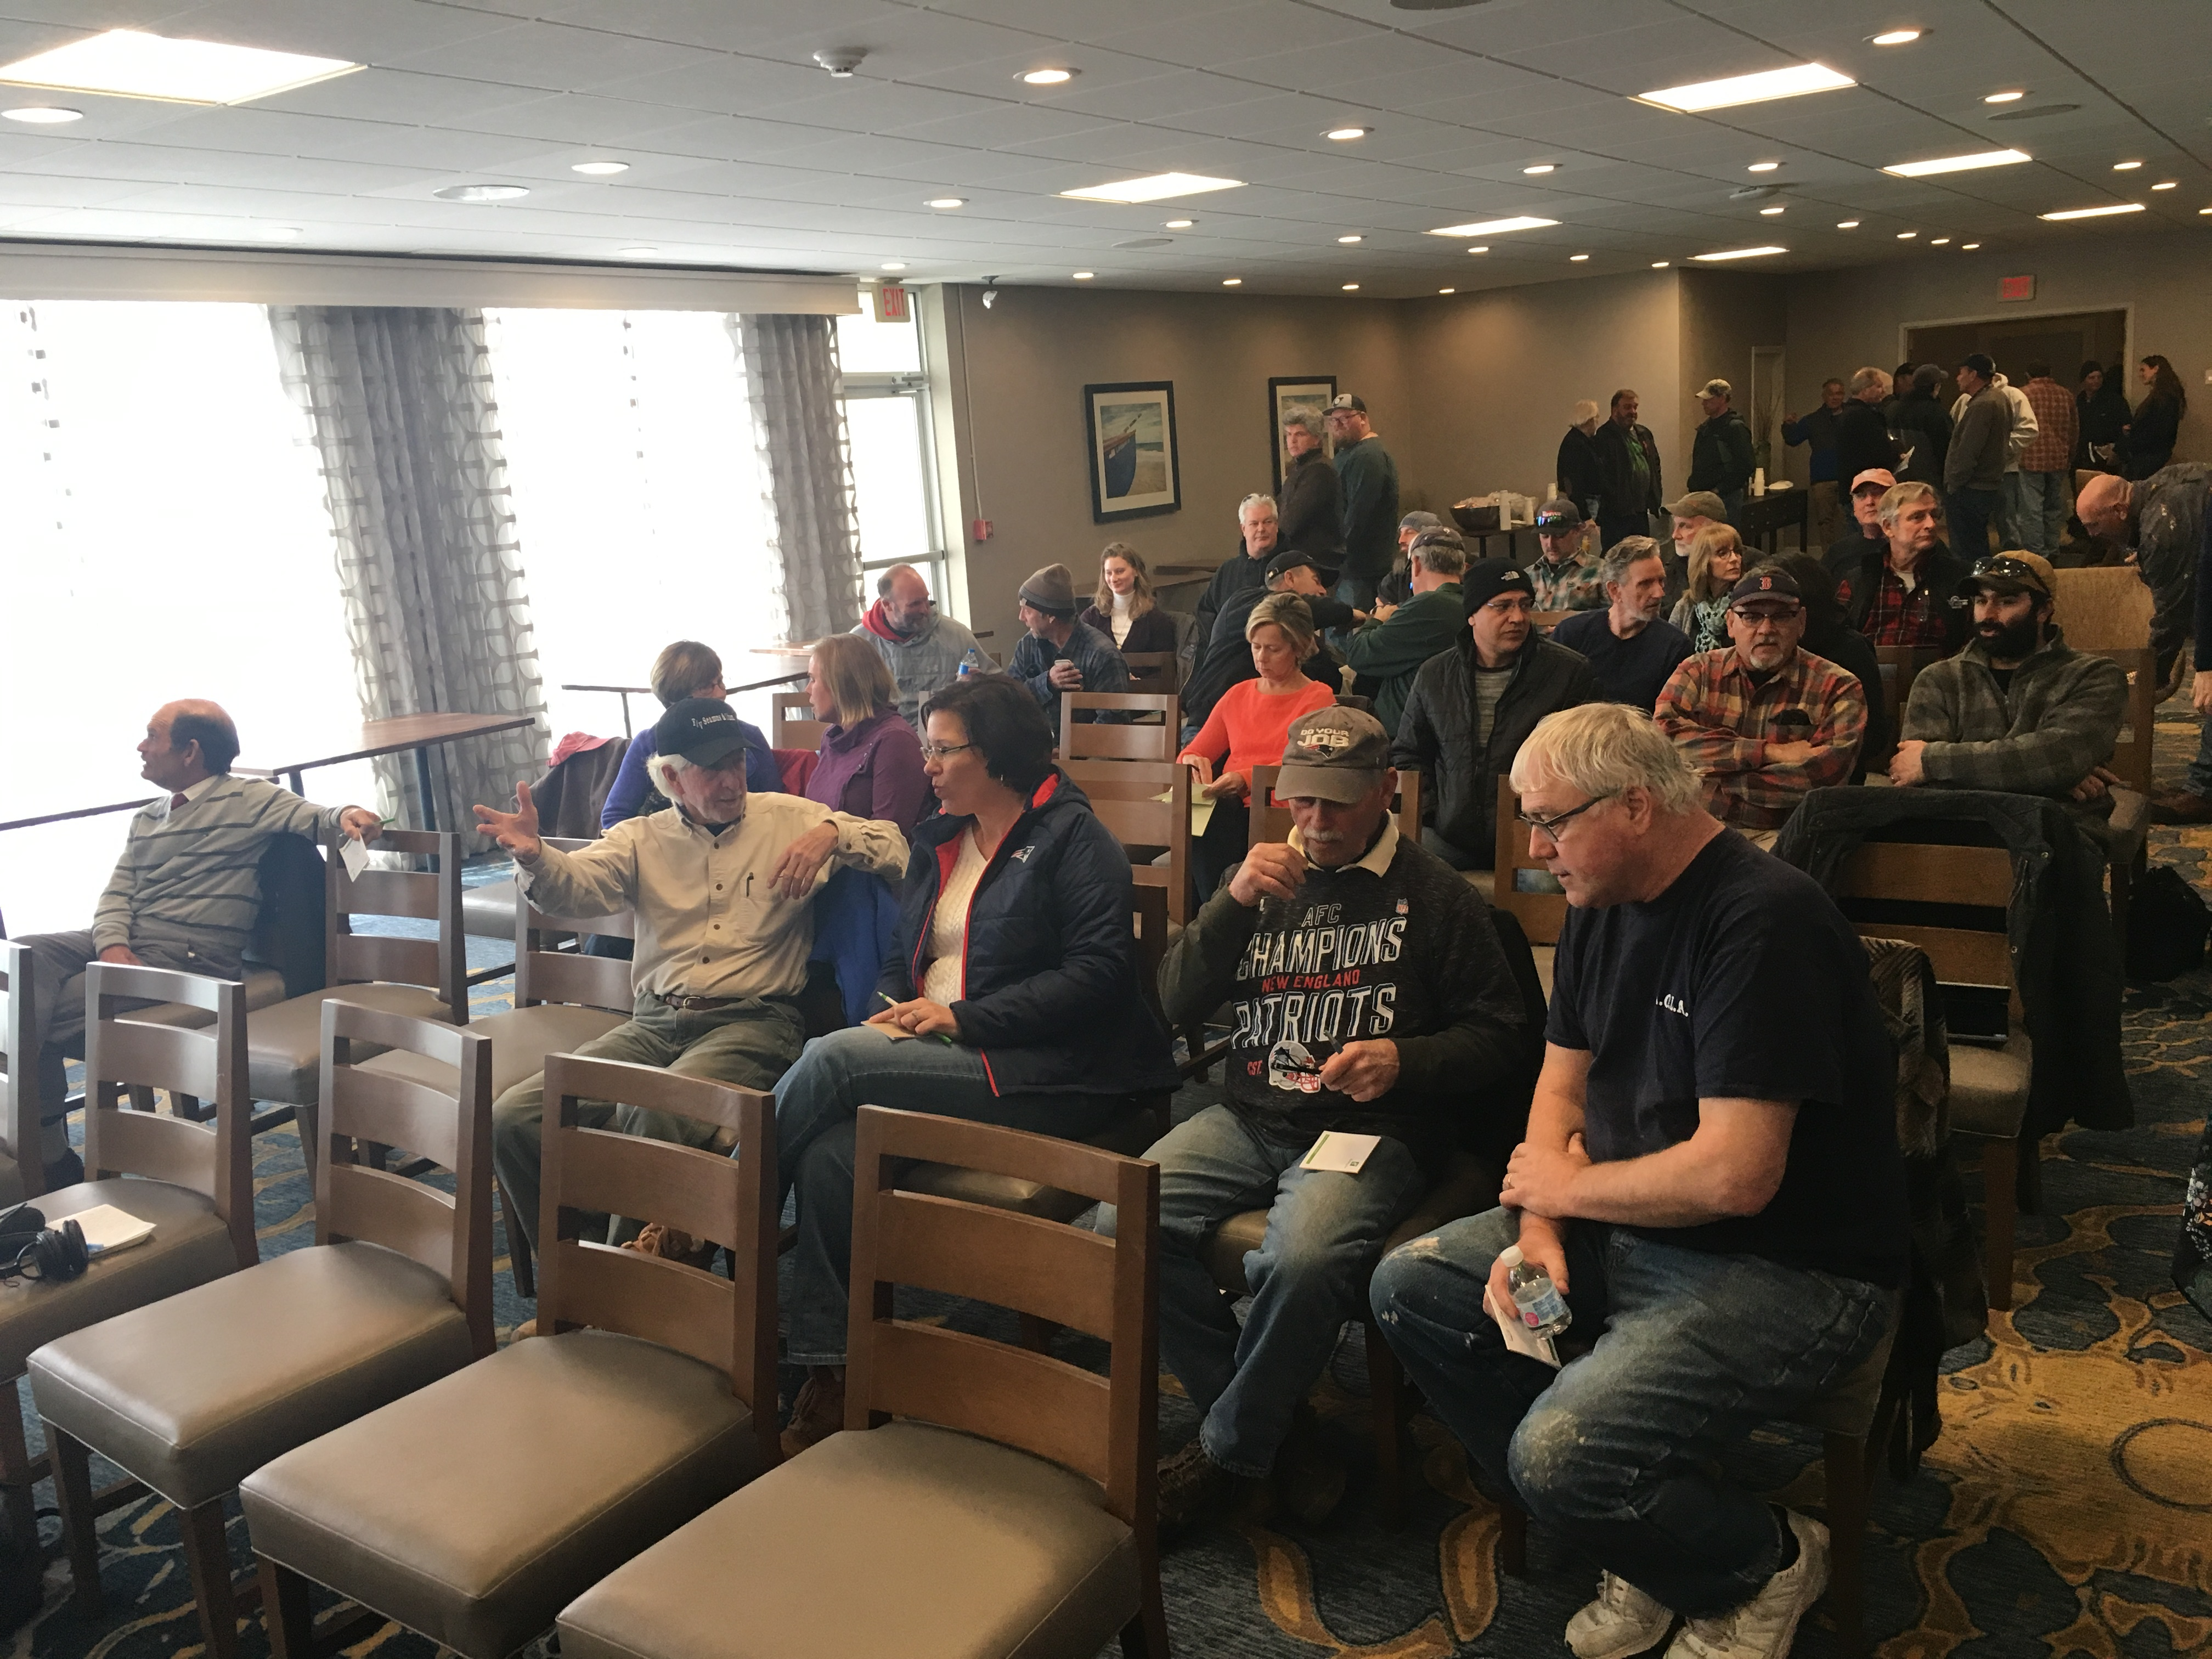 Members of the commercial fishing industry gather at a hotel in South Kingstown Saturday during a fishermen's advisory board meeting to accept or reject compensation from Vineyard Wind.